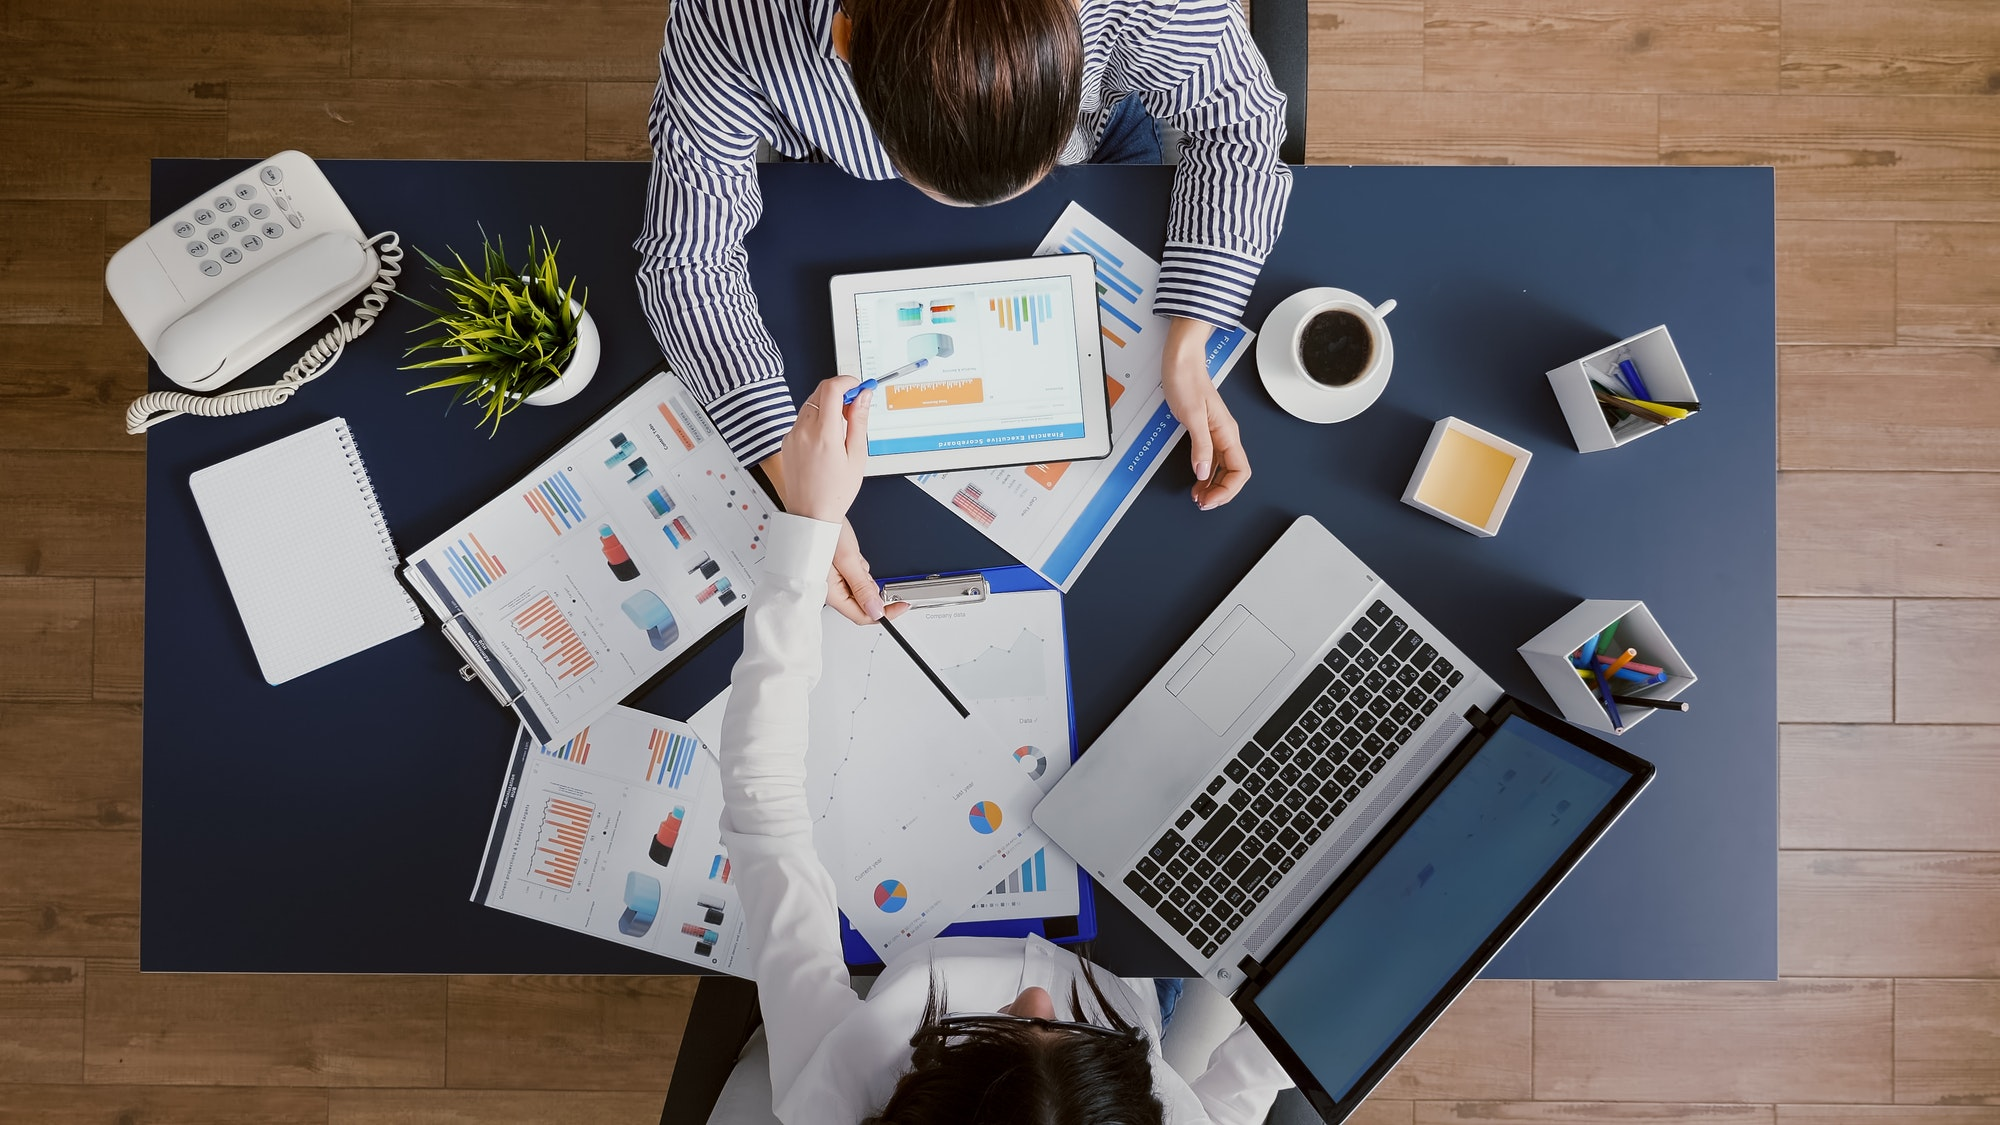 E-commerce business valuation: Top view of managers looking at accounting paperwork